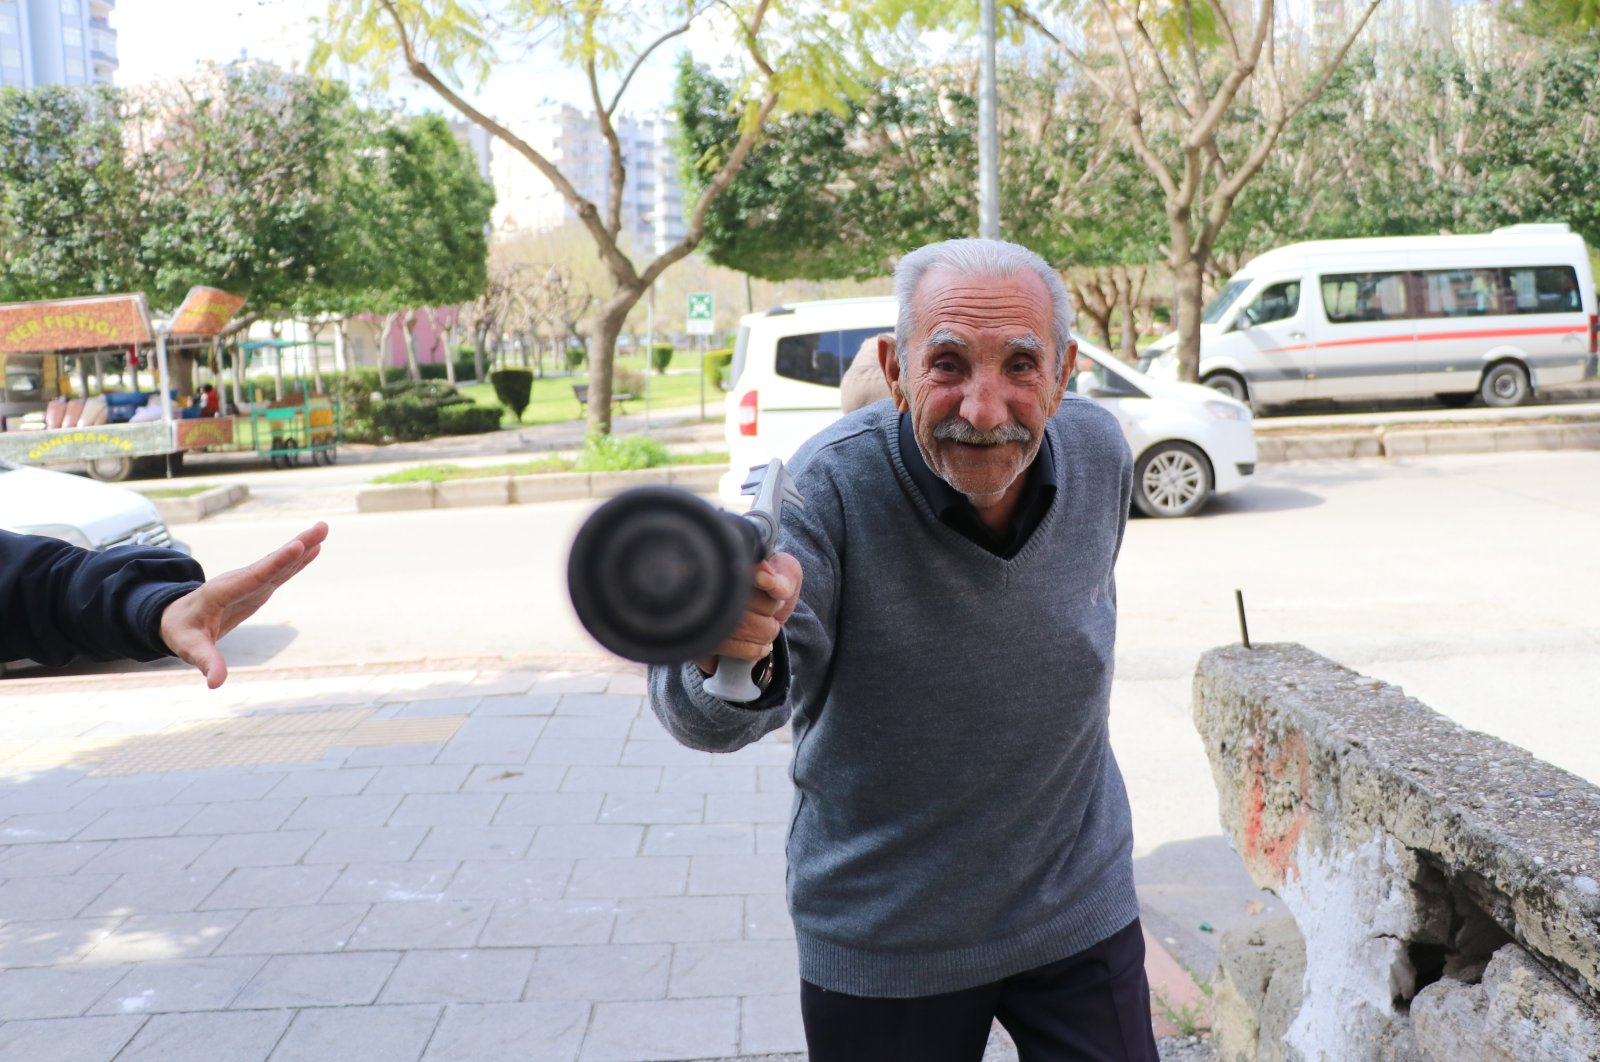 Elders out on the streets are being warned and ushered off to their homes as part of the measures but sometimes officials are met with resistance, as in the case with a 78-year-old man (pictured) from Adana, southern Turkey. (IHA Photo)